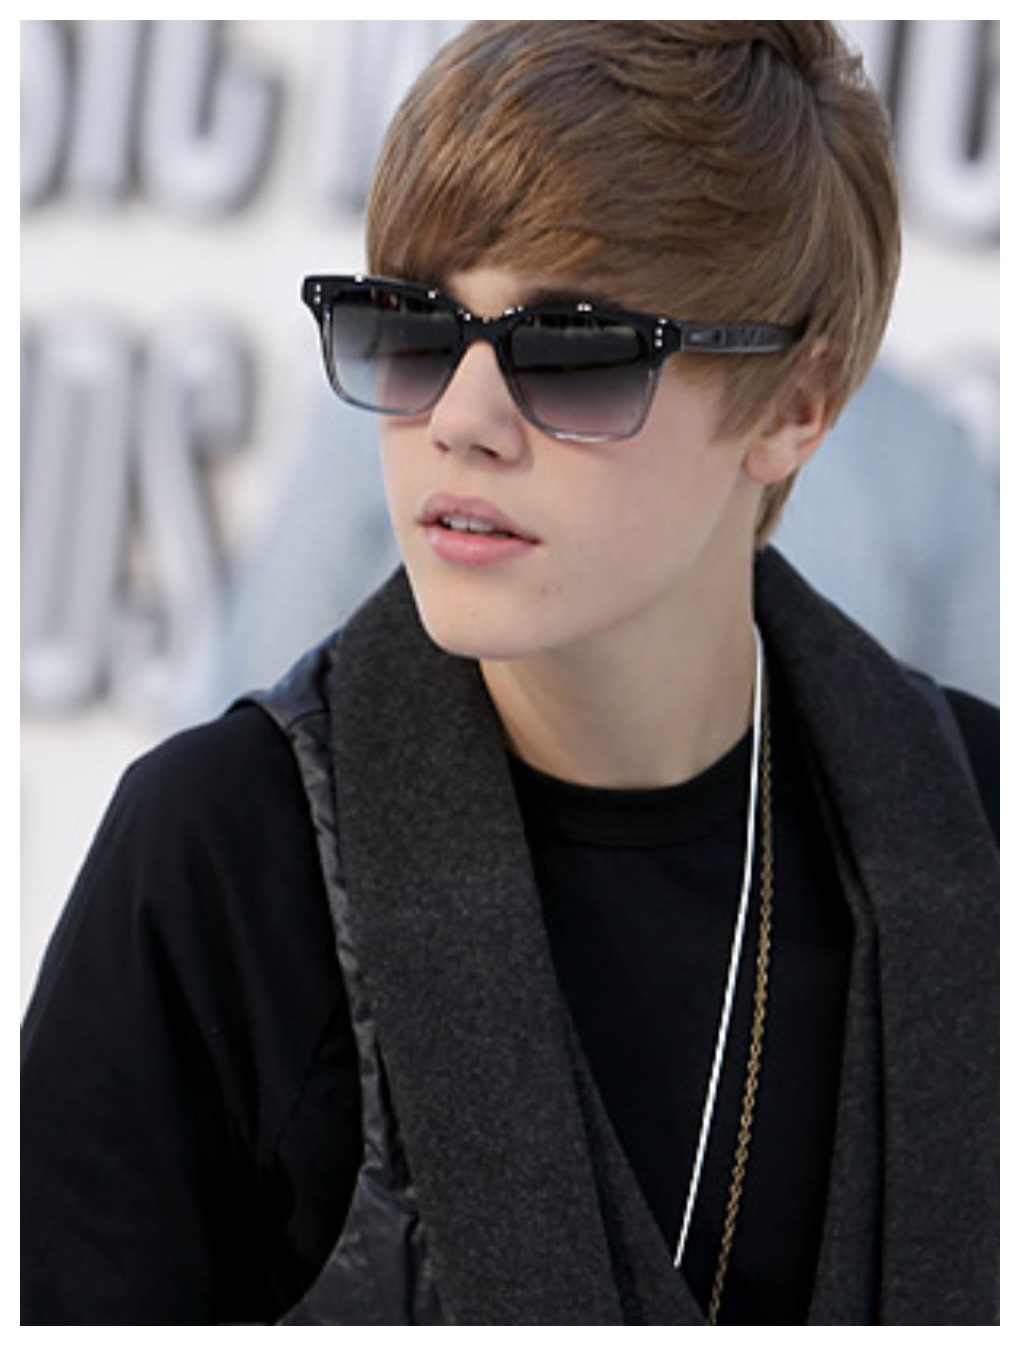 Singer Justin Bieber Haircut Hairstyle For Young Boys